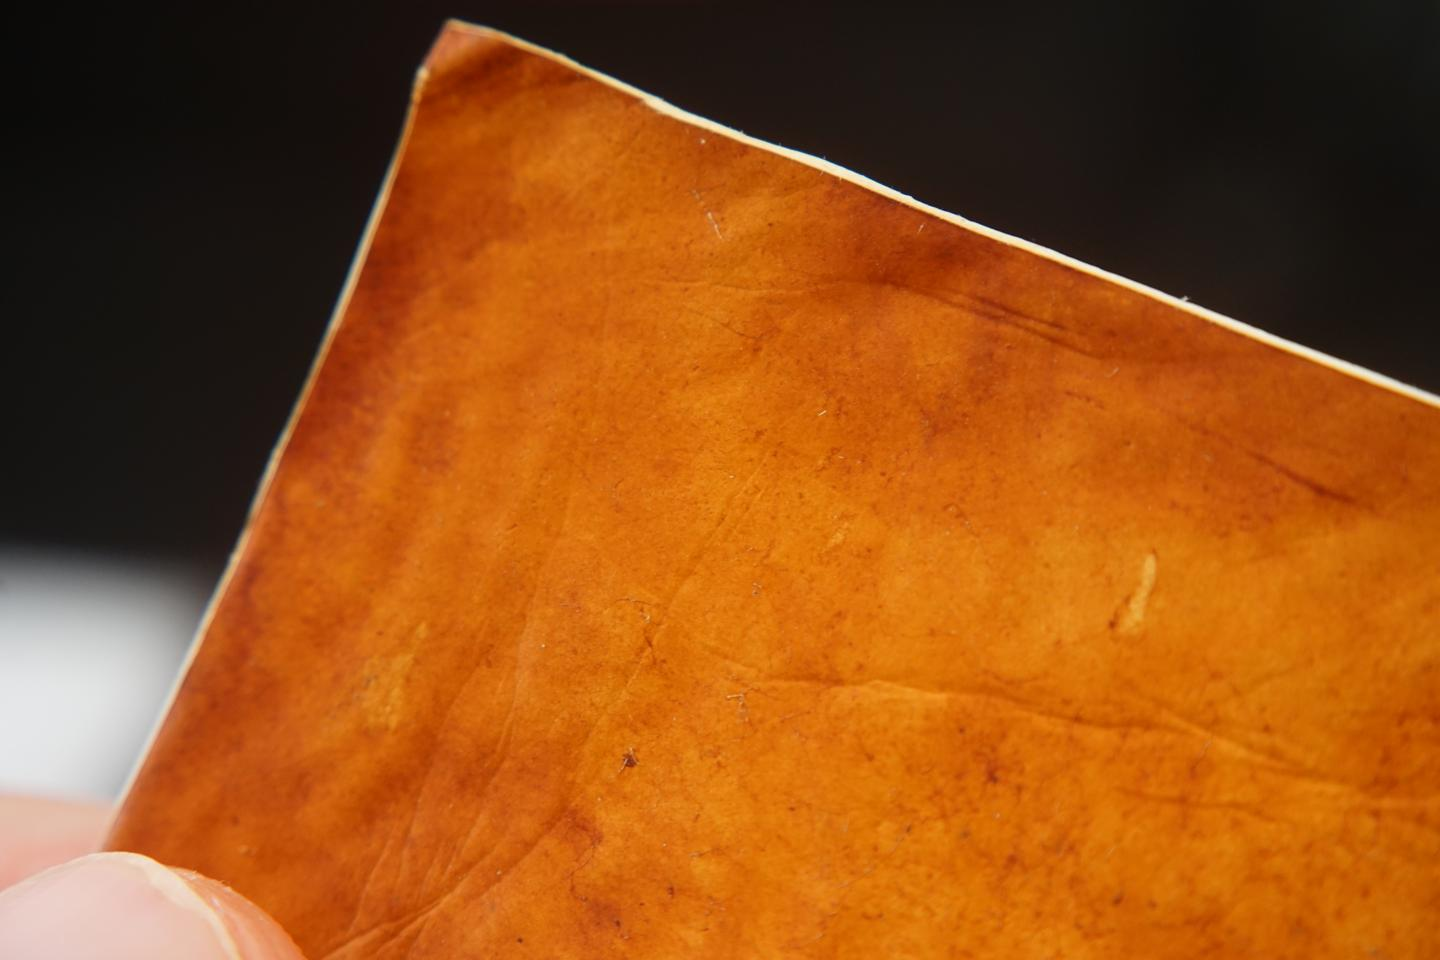 A closer look at the leather product developed from mycelium fungi sheets